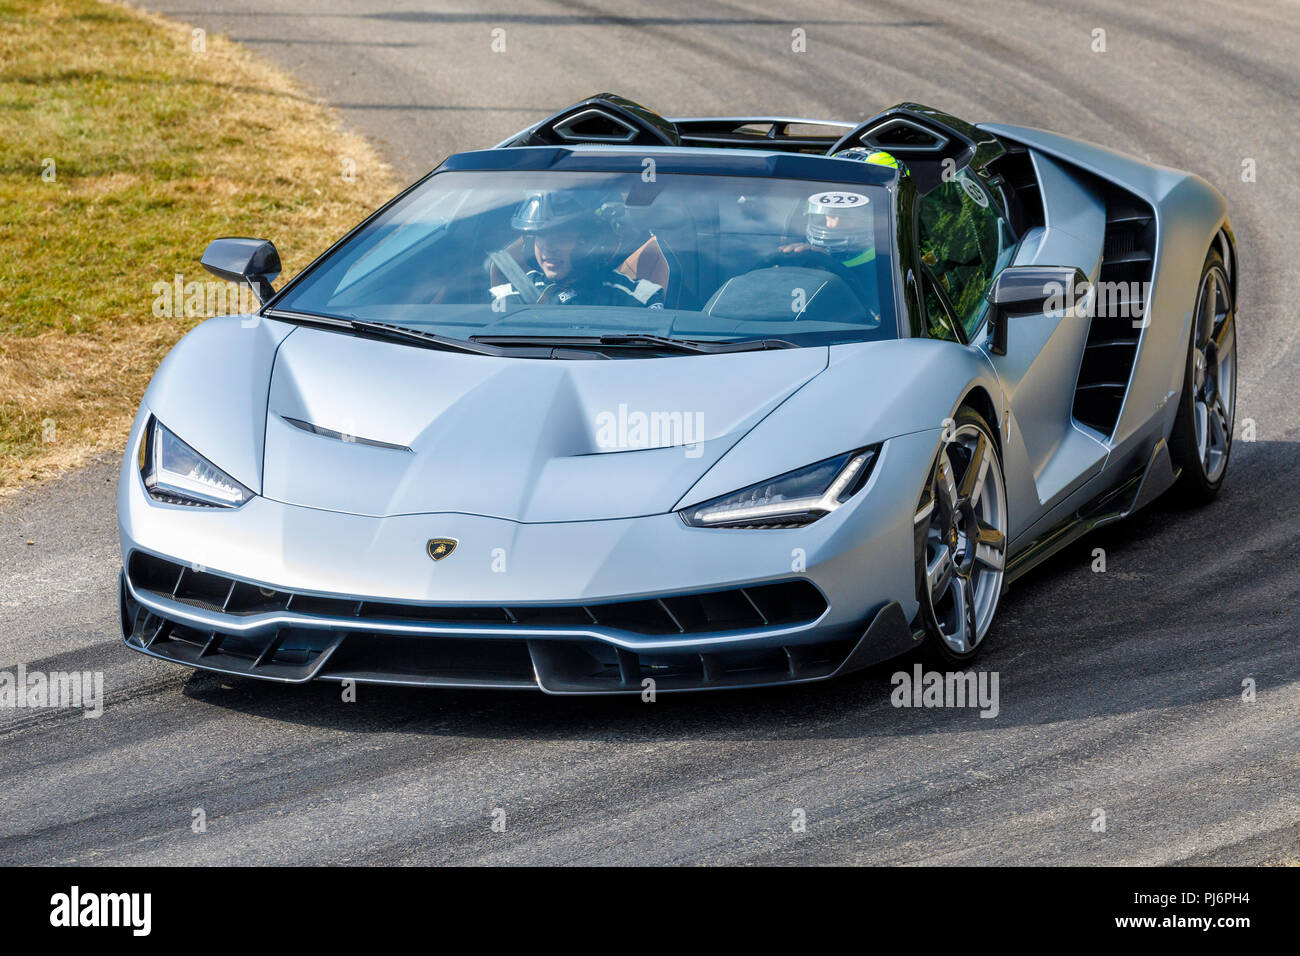 2018 Lamborghini Centenario Roadster on it's demonstration hillclimb run at the 2018 Goodwood Festival of Speed, Sussex, UK. - Stock Image